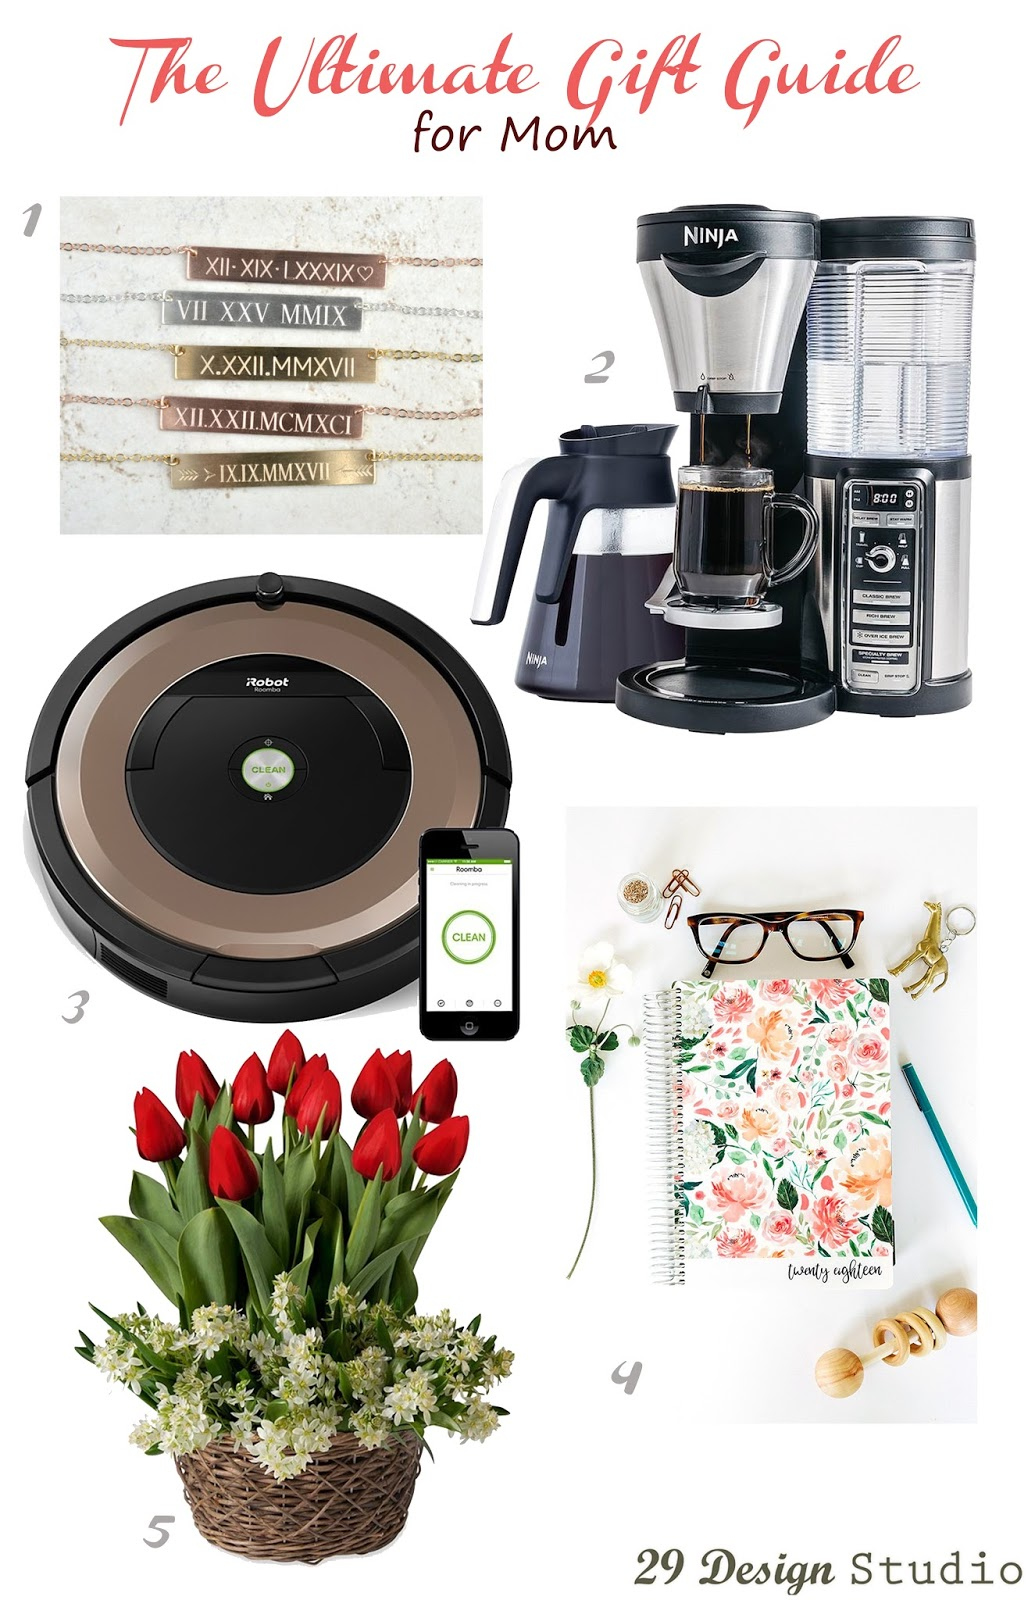 29 Design Studio: The Ultimate Gift Guide for any style Mom